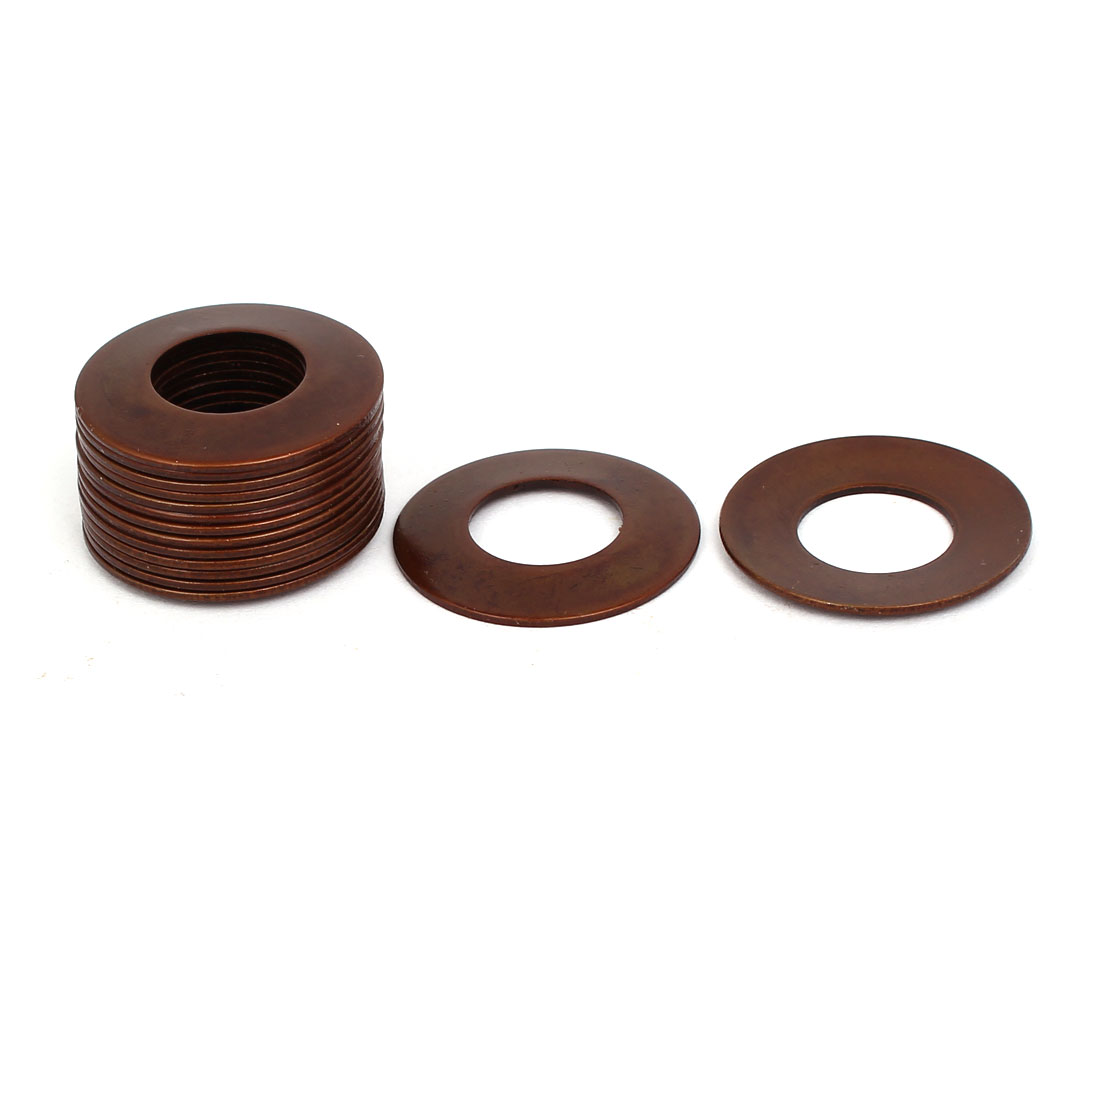 25mm Outer Dia 12.2mm Inner Dia 0.9mm Thickness Belleville Spring Washer 15pcs